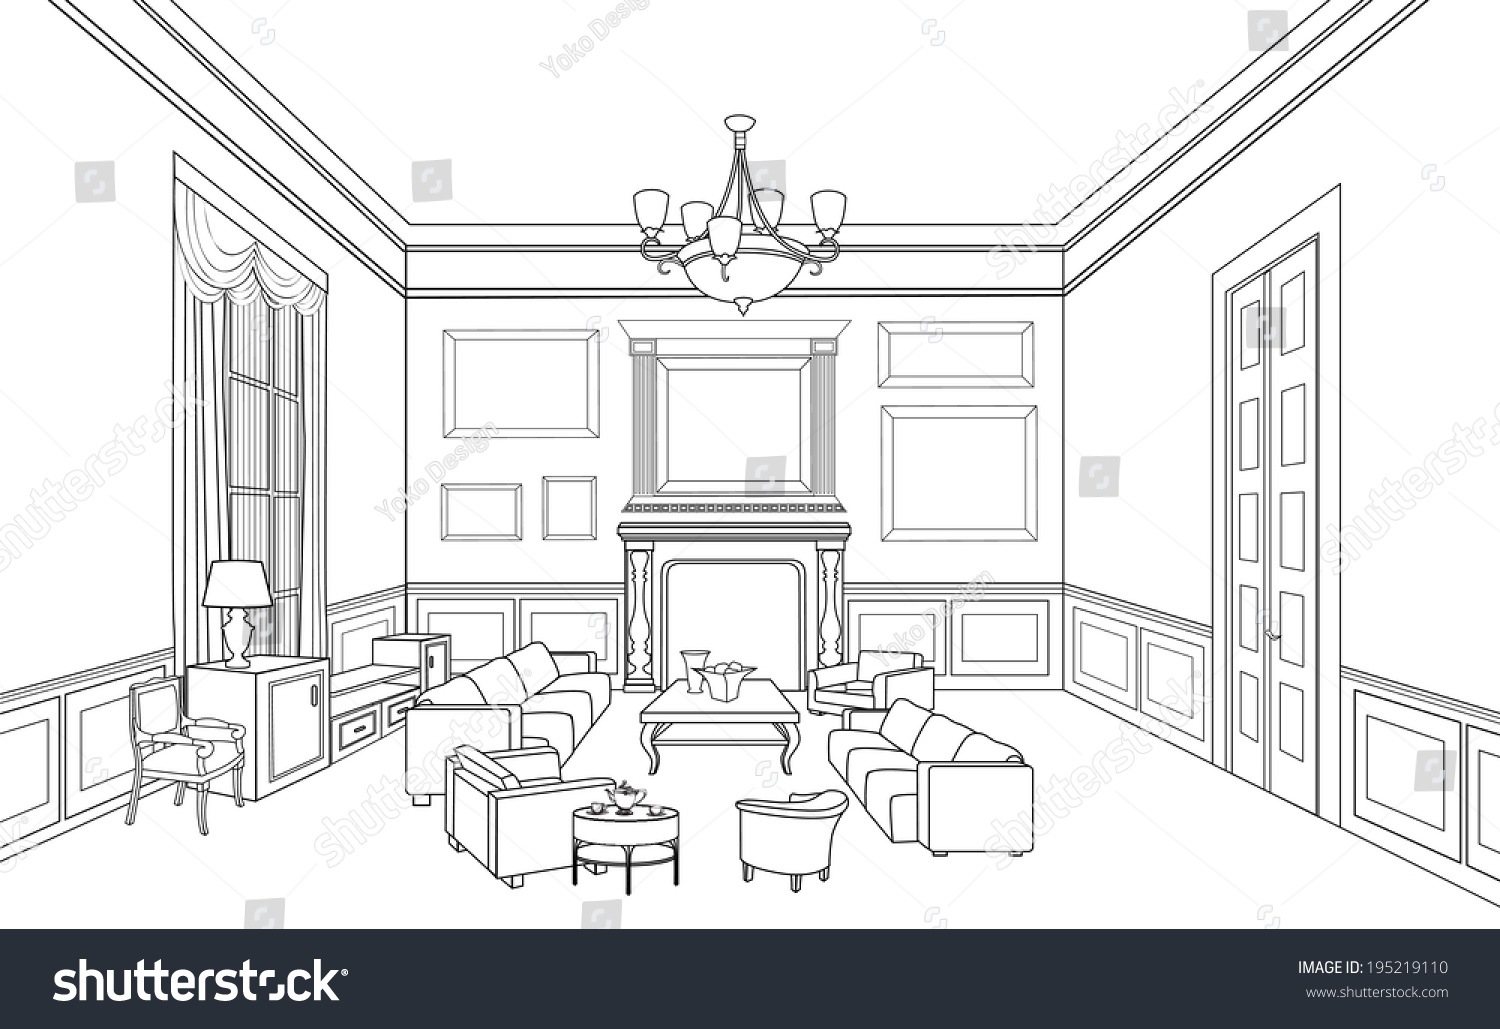 Drawingroom editable vector illustration outline sketch Room sketches interior design